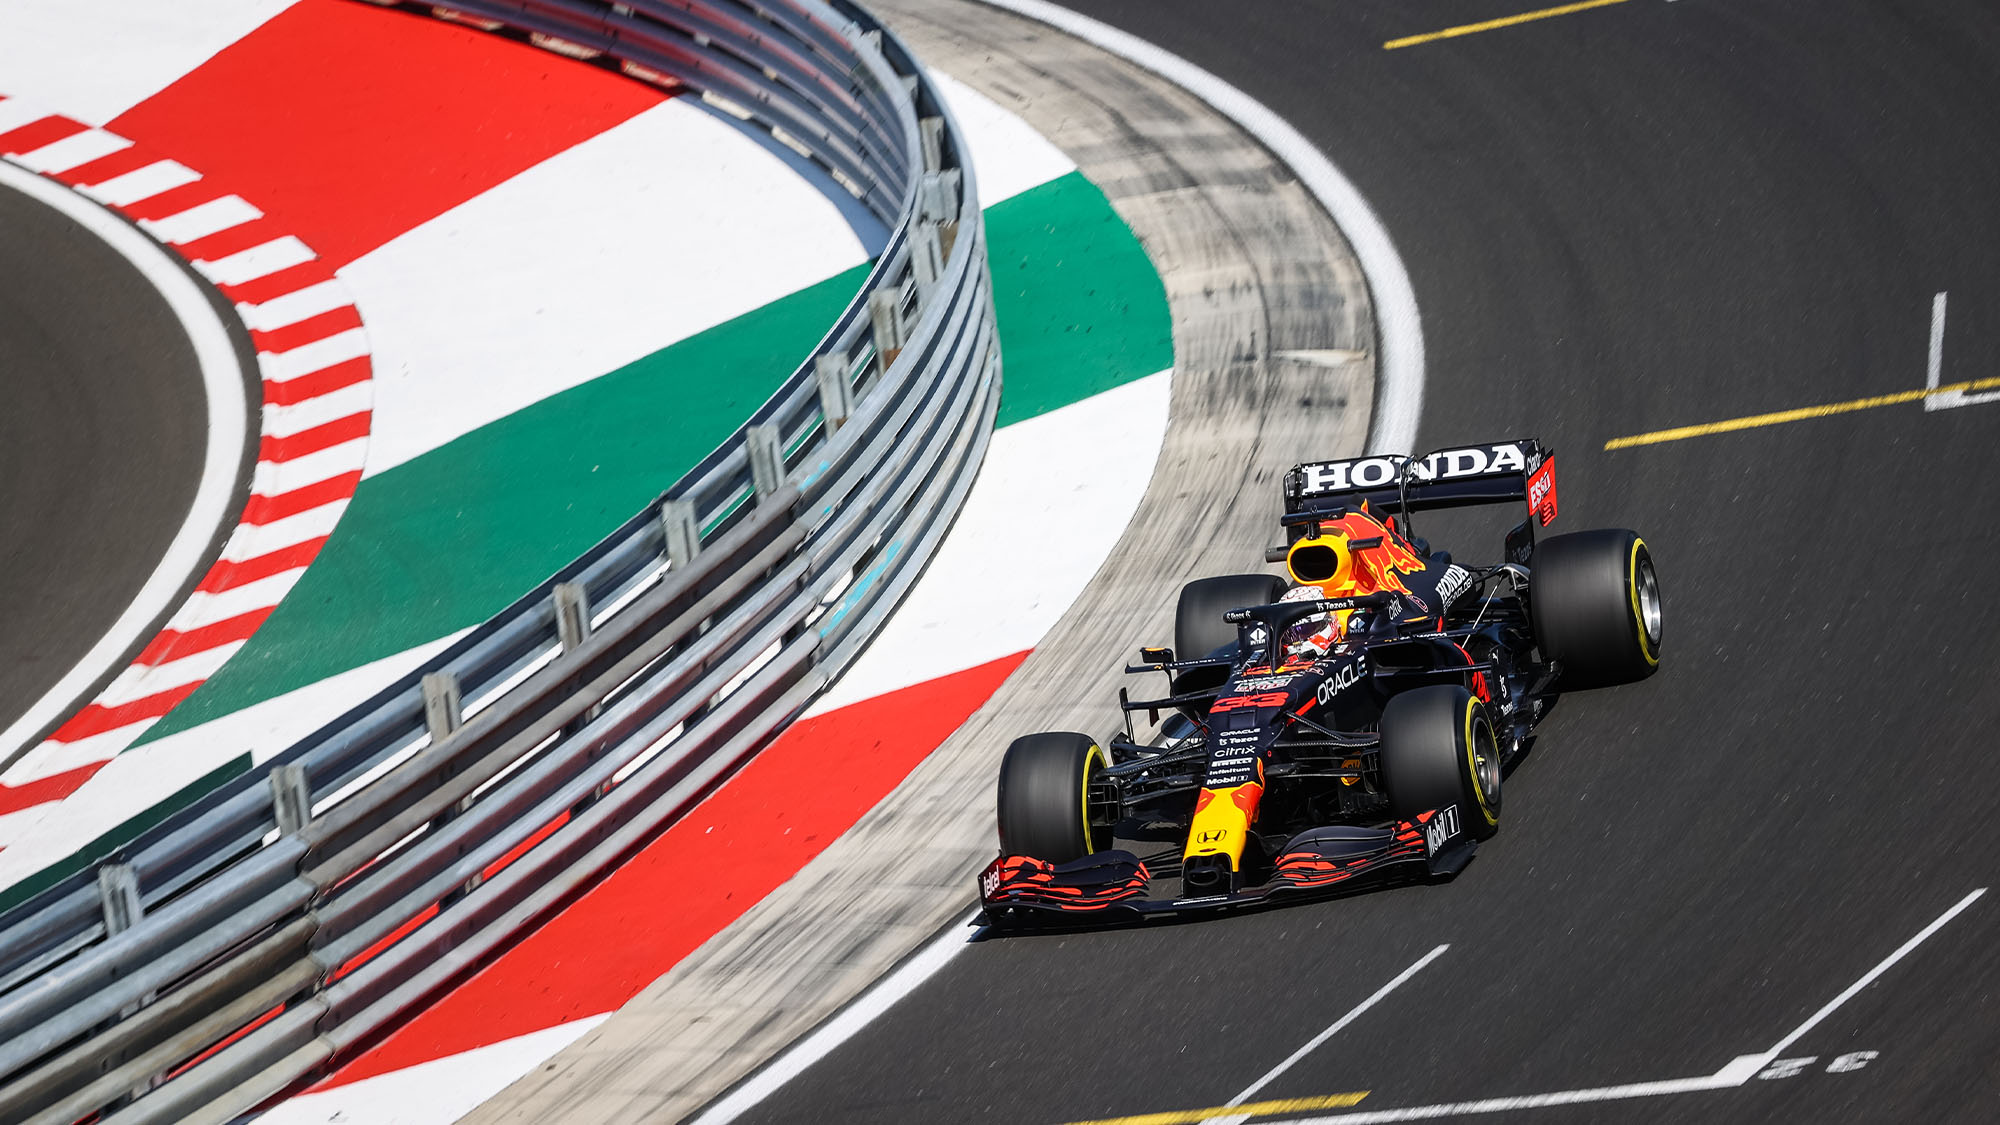 33 VERSTAPPEN Max (nld), Red Bull Racing Honda RB16B, action during the Formula 1 Magyar Nagydij 2021, Hungarian Grand Prix, 11th round of the 2021 FIA Formula One World Championship from July 30 to August 1, 2021 on the Hungaroring, in Mogyorod, near Budapest, Hungary - Photo DPPI